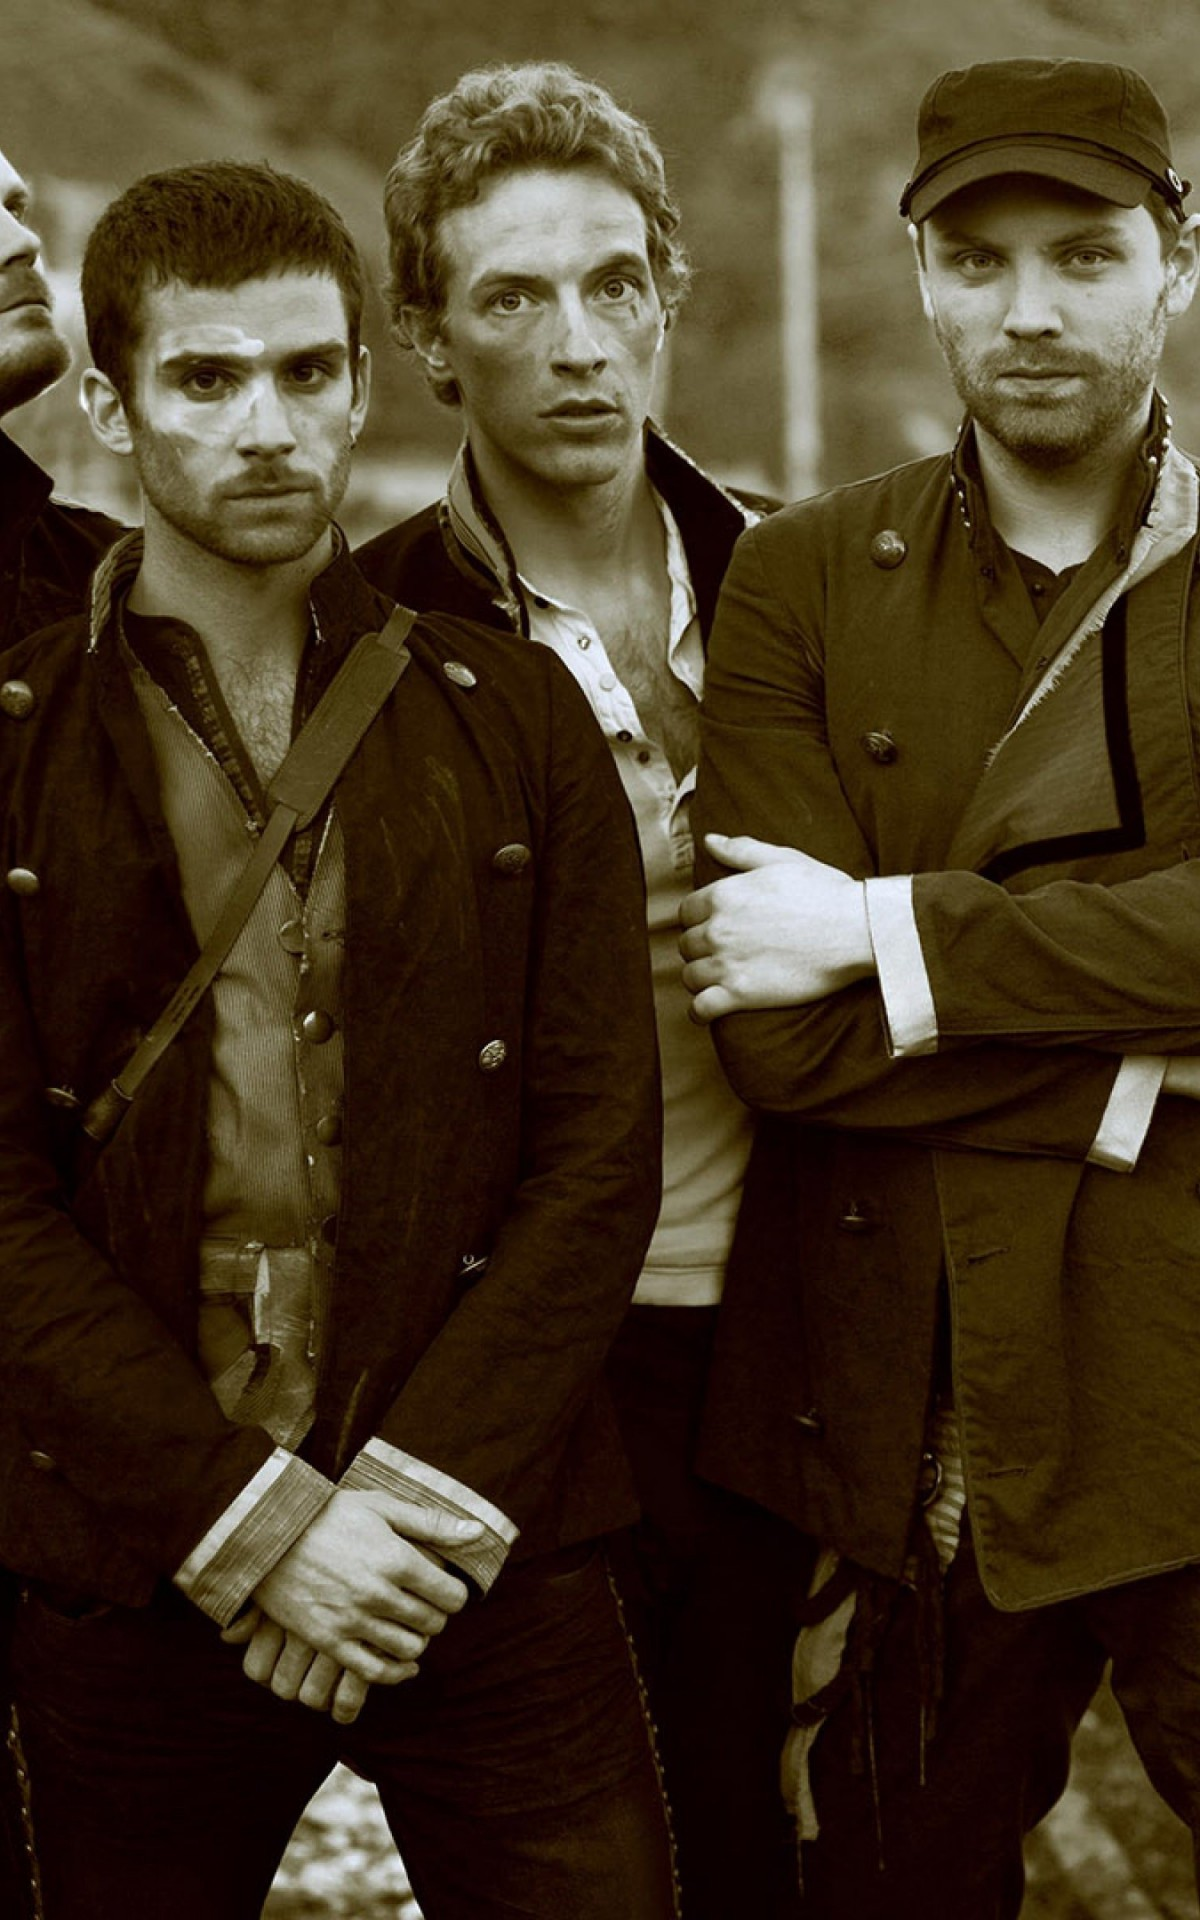 Coldplay Band Sepia Wallpaper for Amazon Kindle Fire HDX